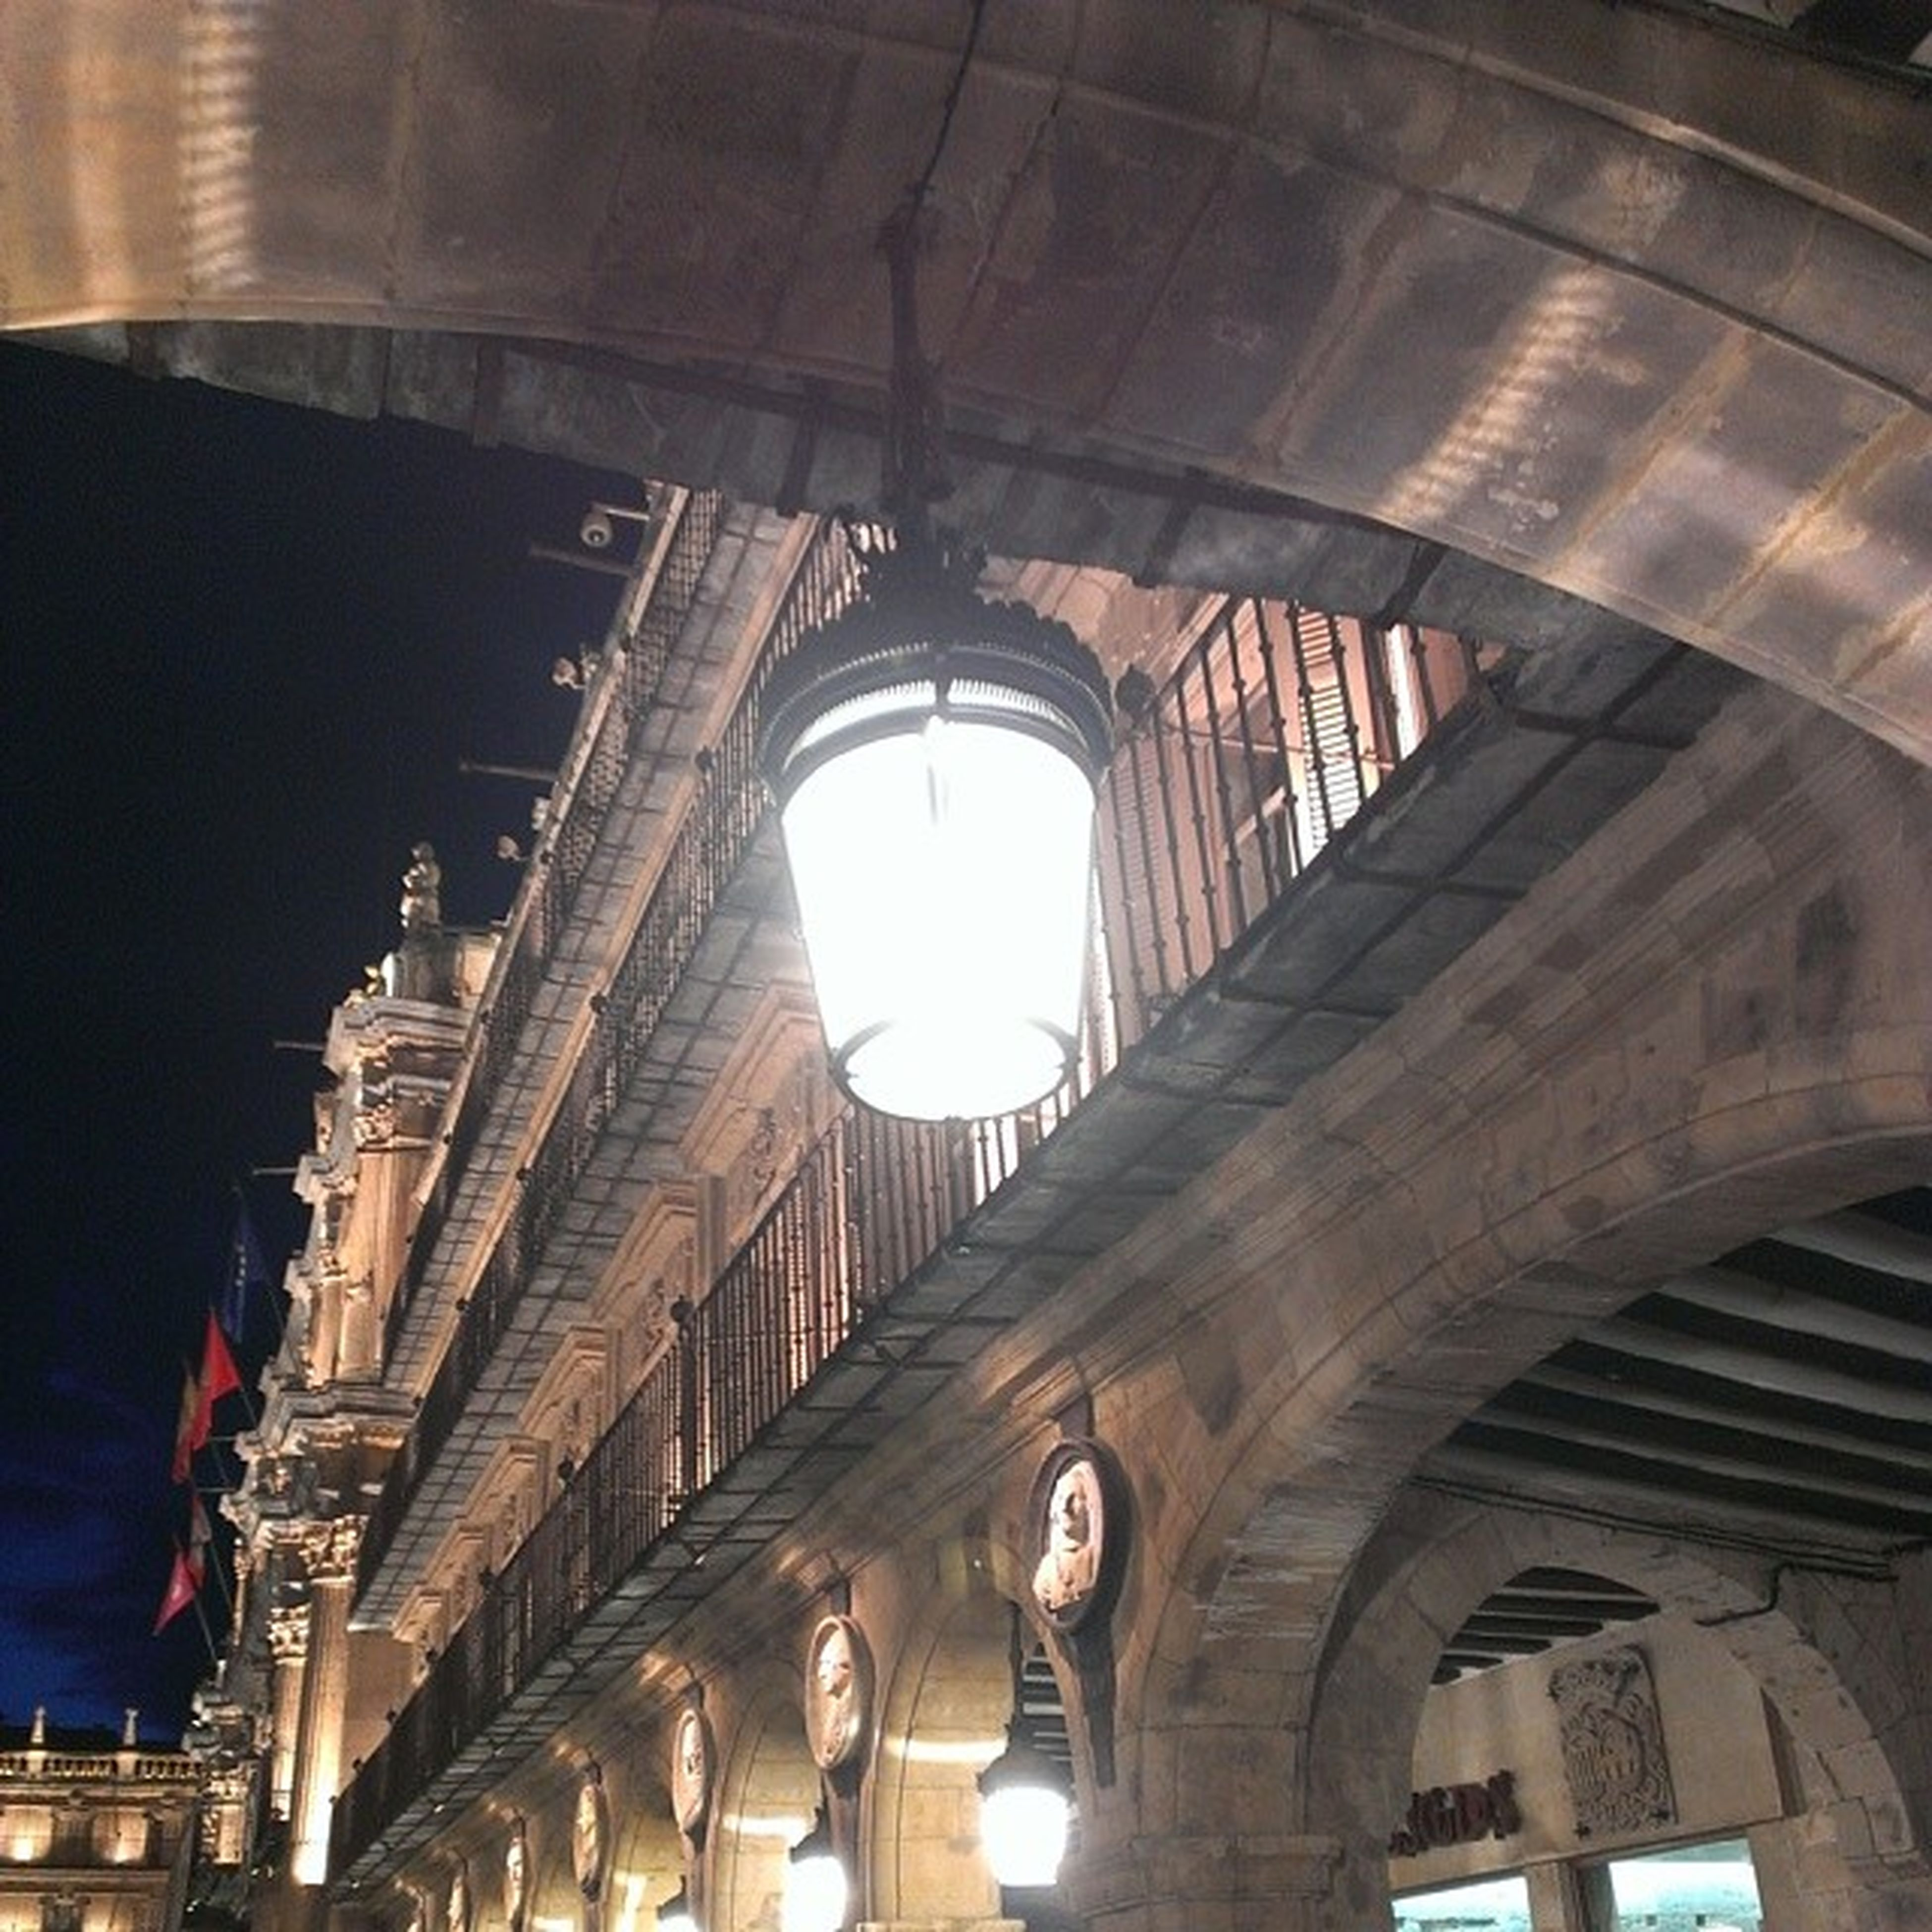 architecture, arch, built structure, low angle view, indoors, ceiling, architectural column, illuminated, interior, building exterior, history, building, column, lighting equipment, connection, tunnel, arched, bridge - man made structure, old, incidental people